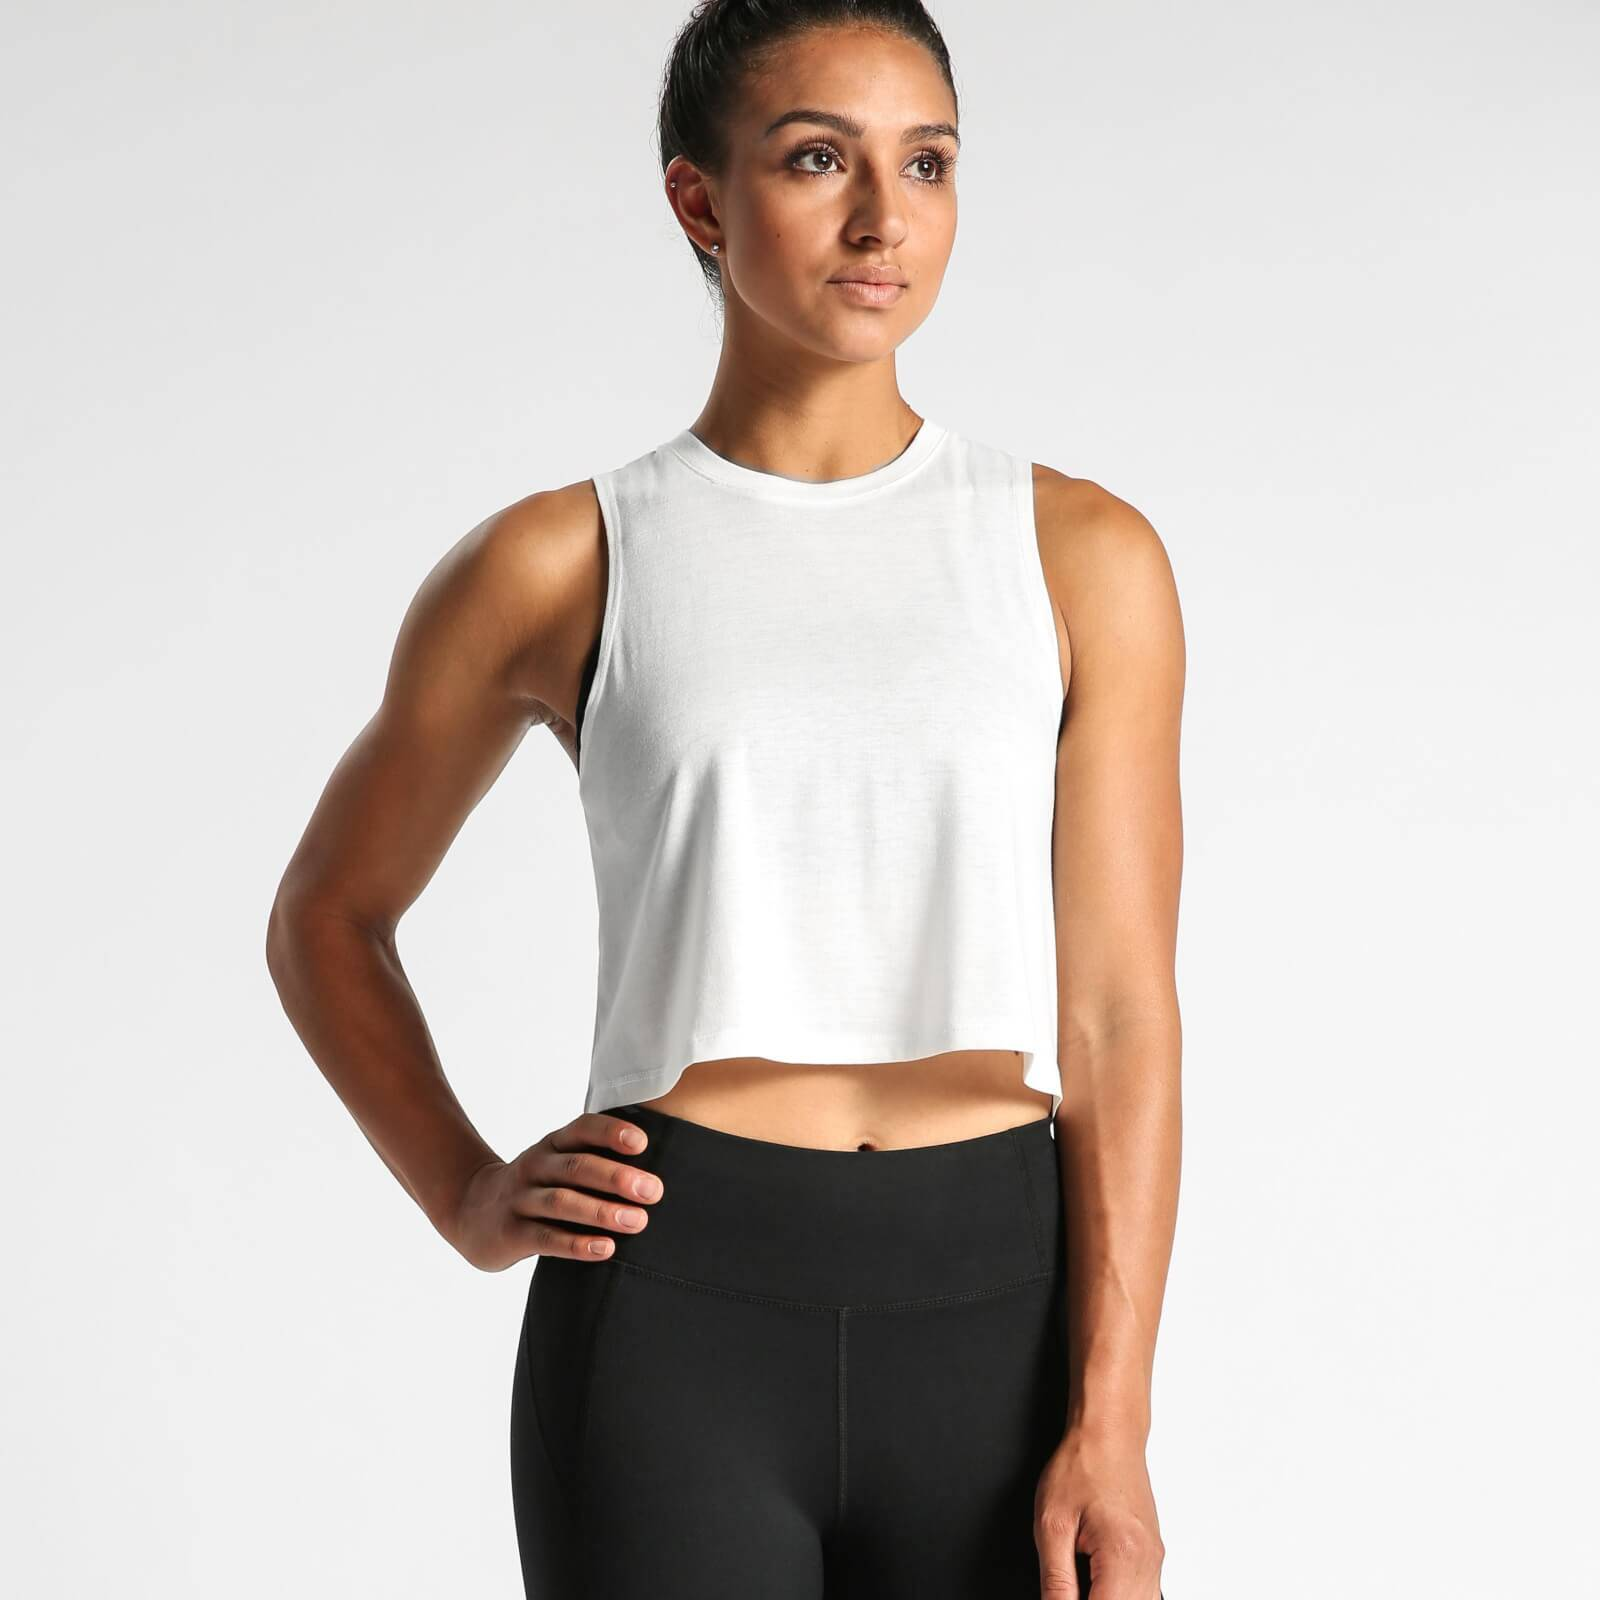 IdealFit Flowy Crop Top - White - L - White